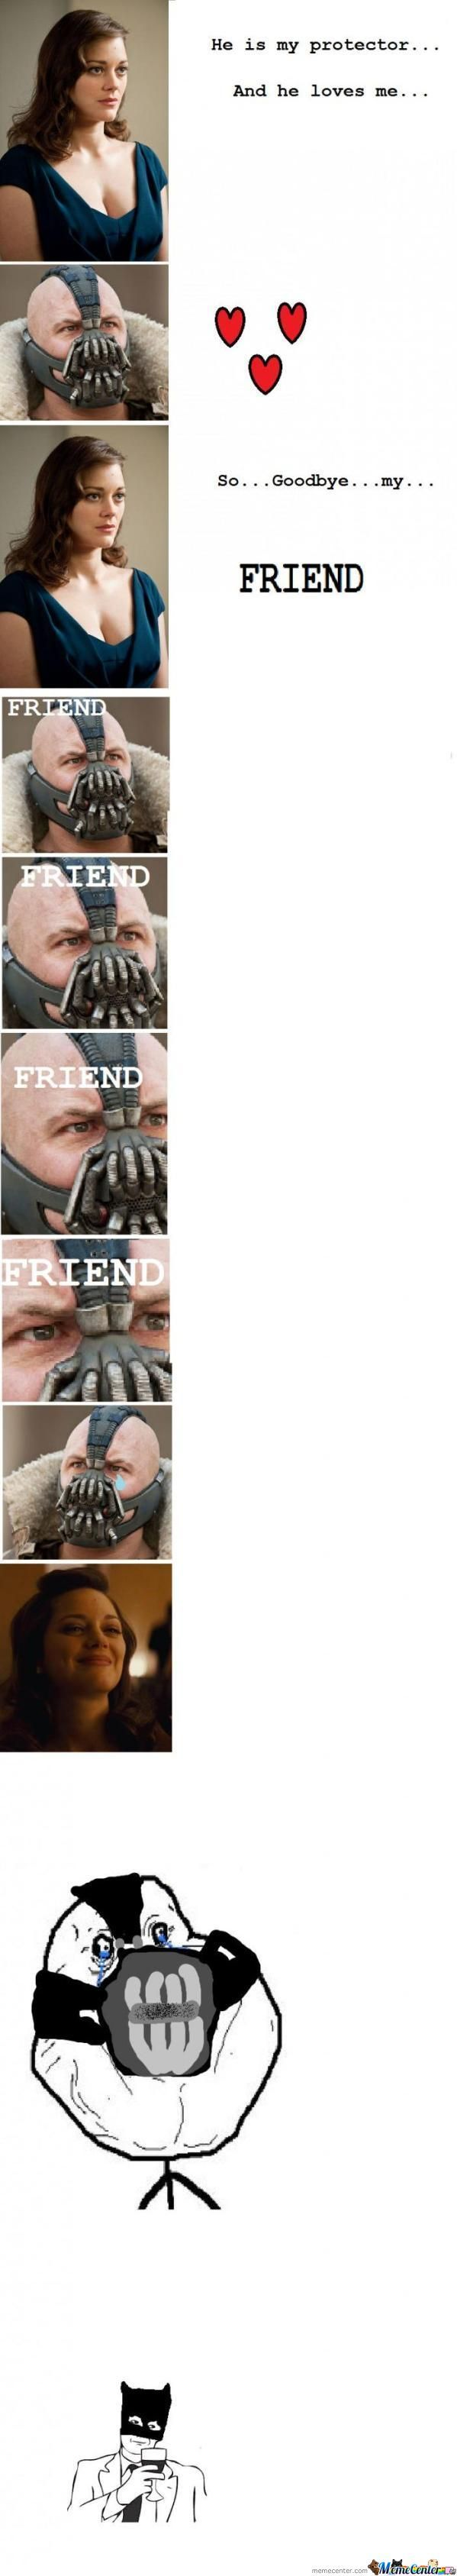 Friendzoned Bane